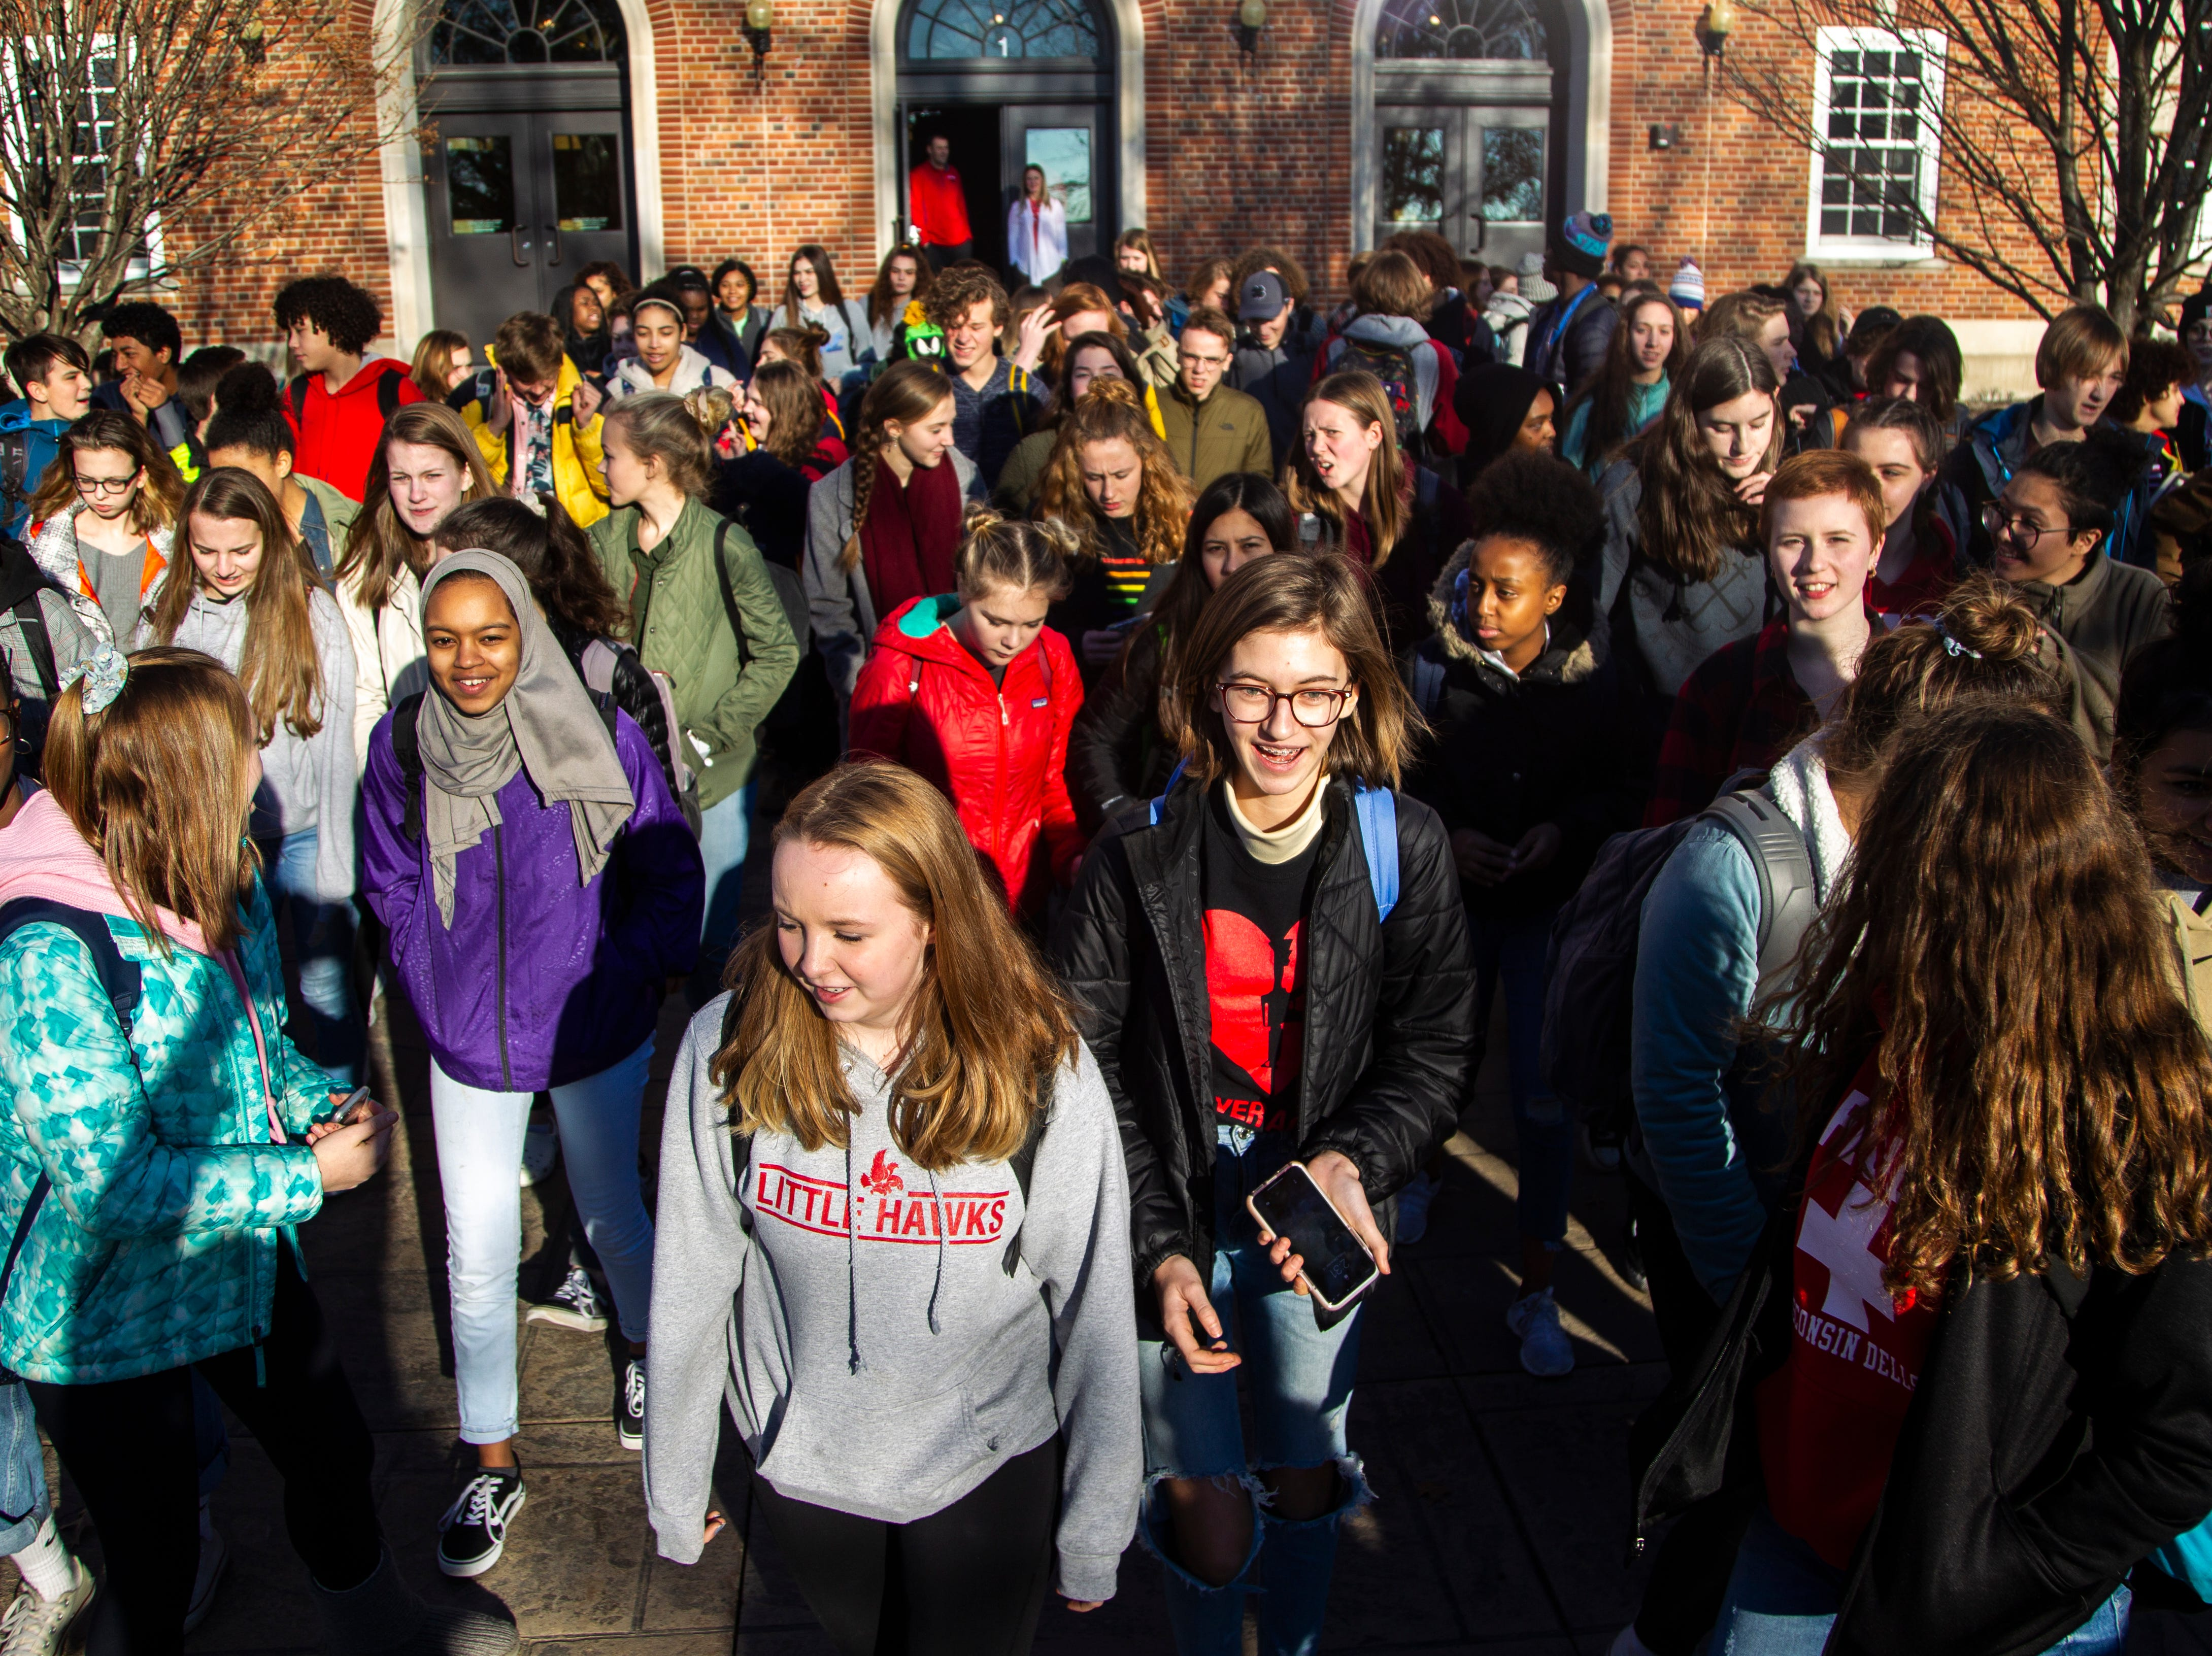 City High students march towards downtown during a walkout on Friday, Dec. 14, 2018, in Iowa City. The Students Against School Shootings group organized the walkout to land on the 6th anniversary of the Sandy Hook school shooting.